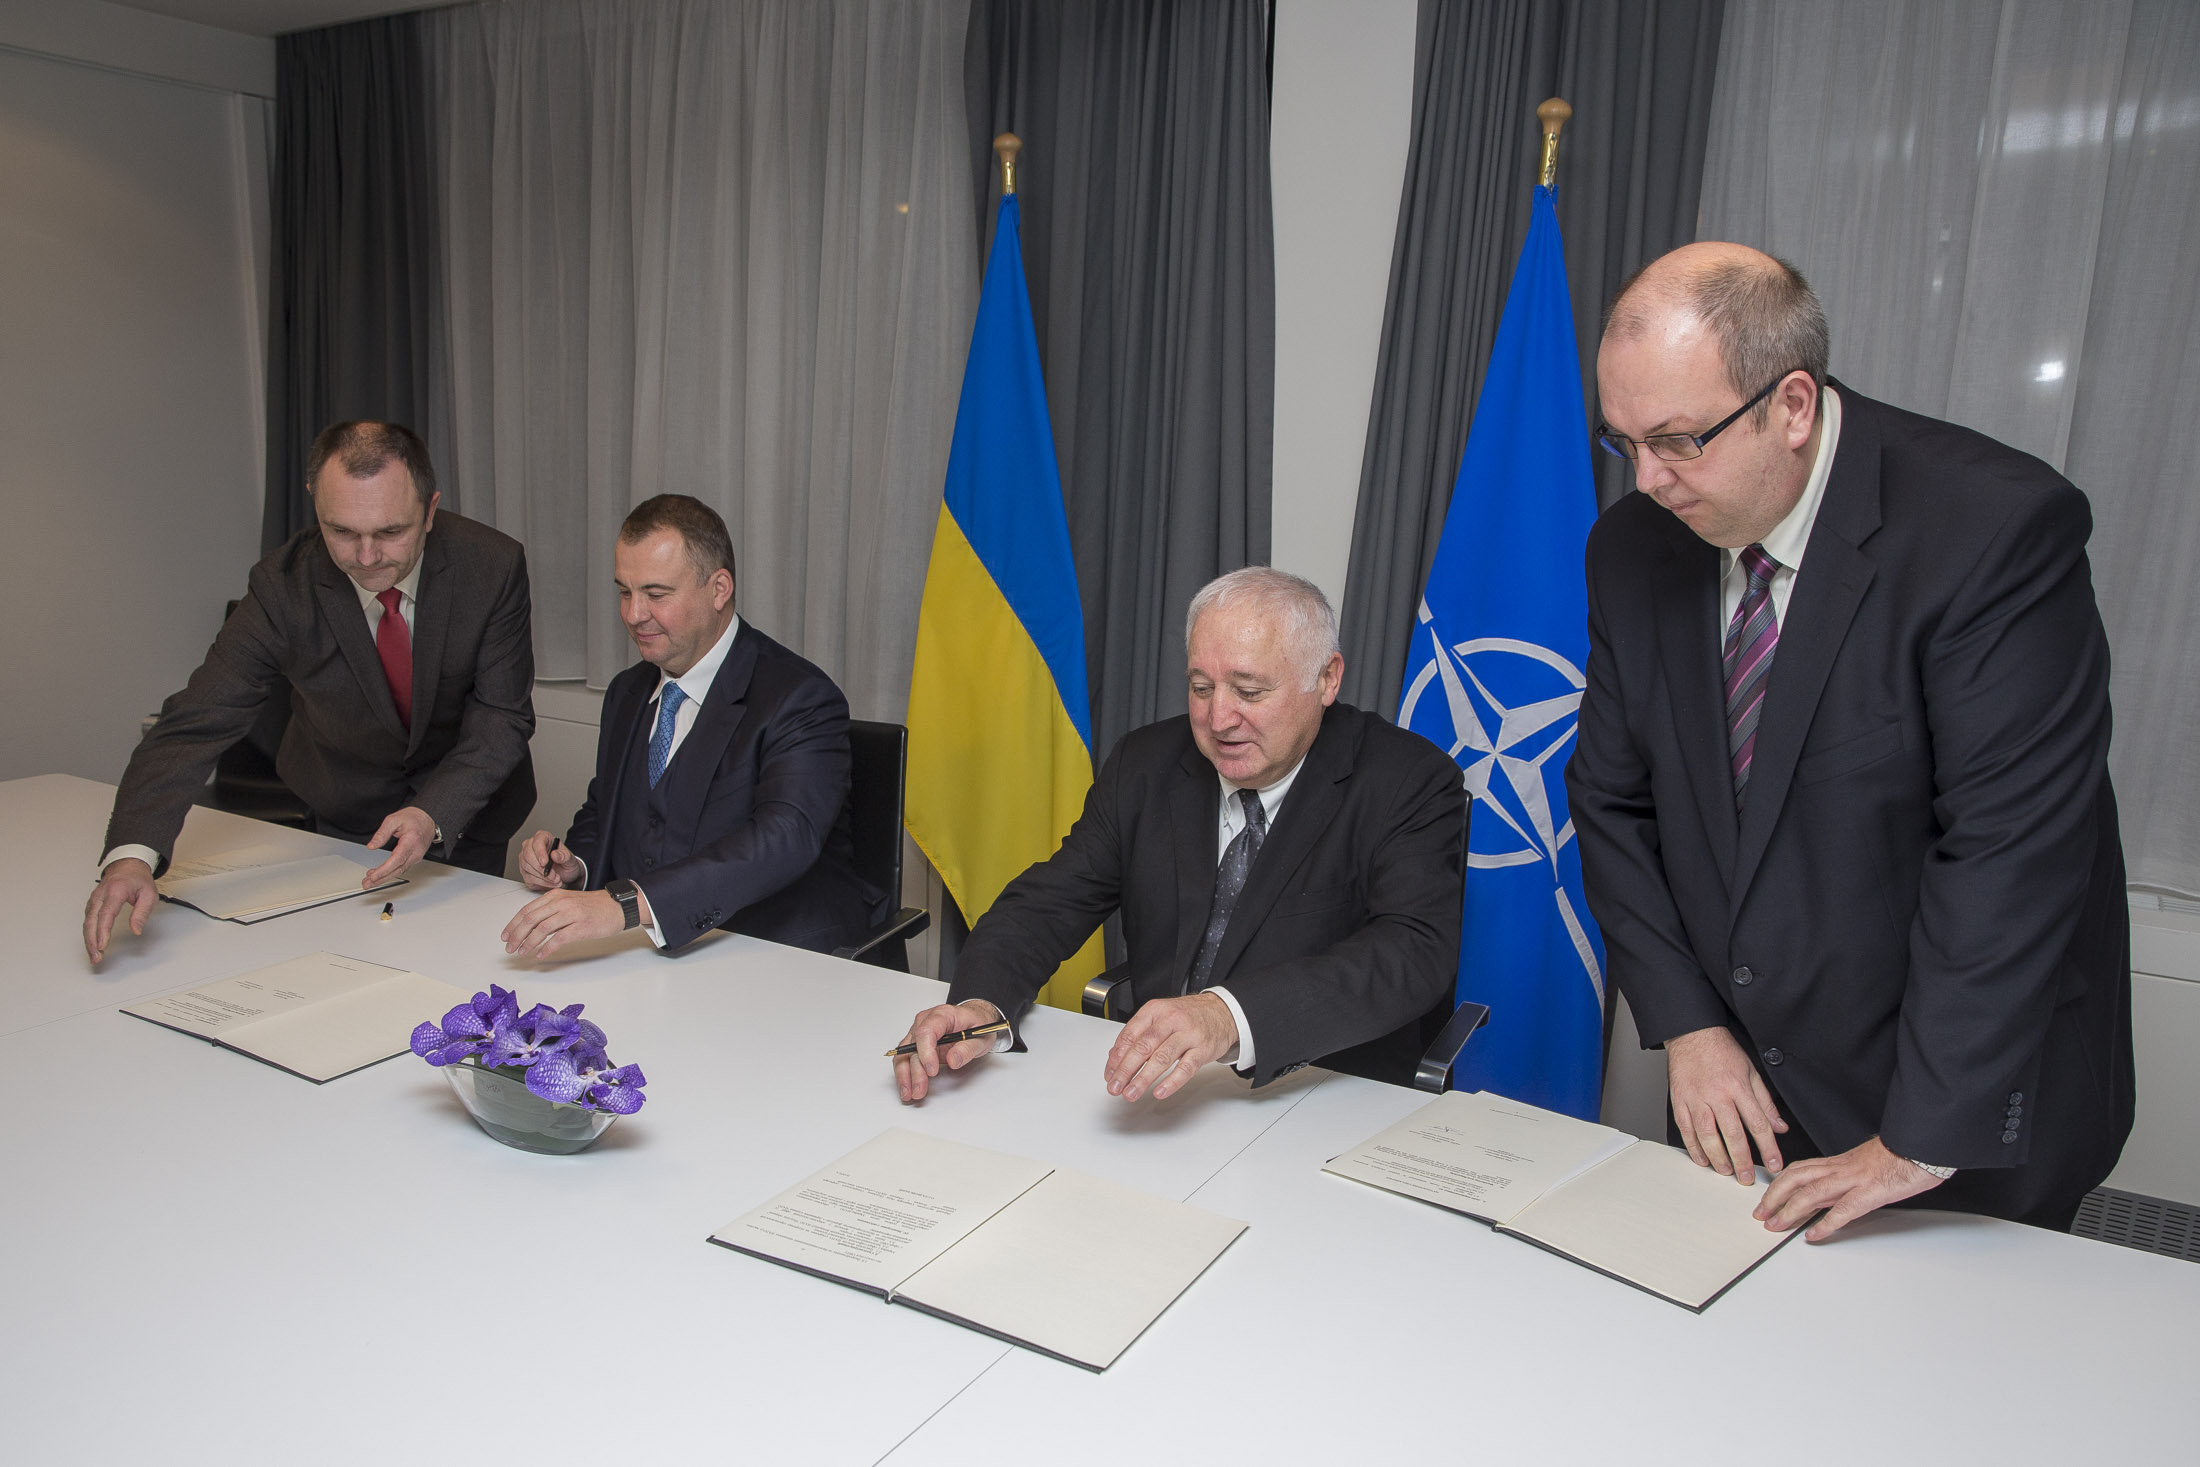 Patrick Auroy, NATO assistant secretary general for defense investment, and Oleg Gladkovski, first deputy secretary of the National Security and Defense Council of Ukraine, signing the road map on Dec. 16, 2015